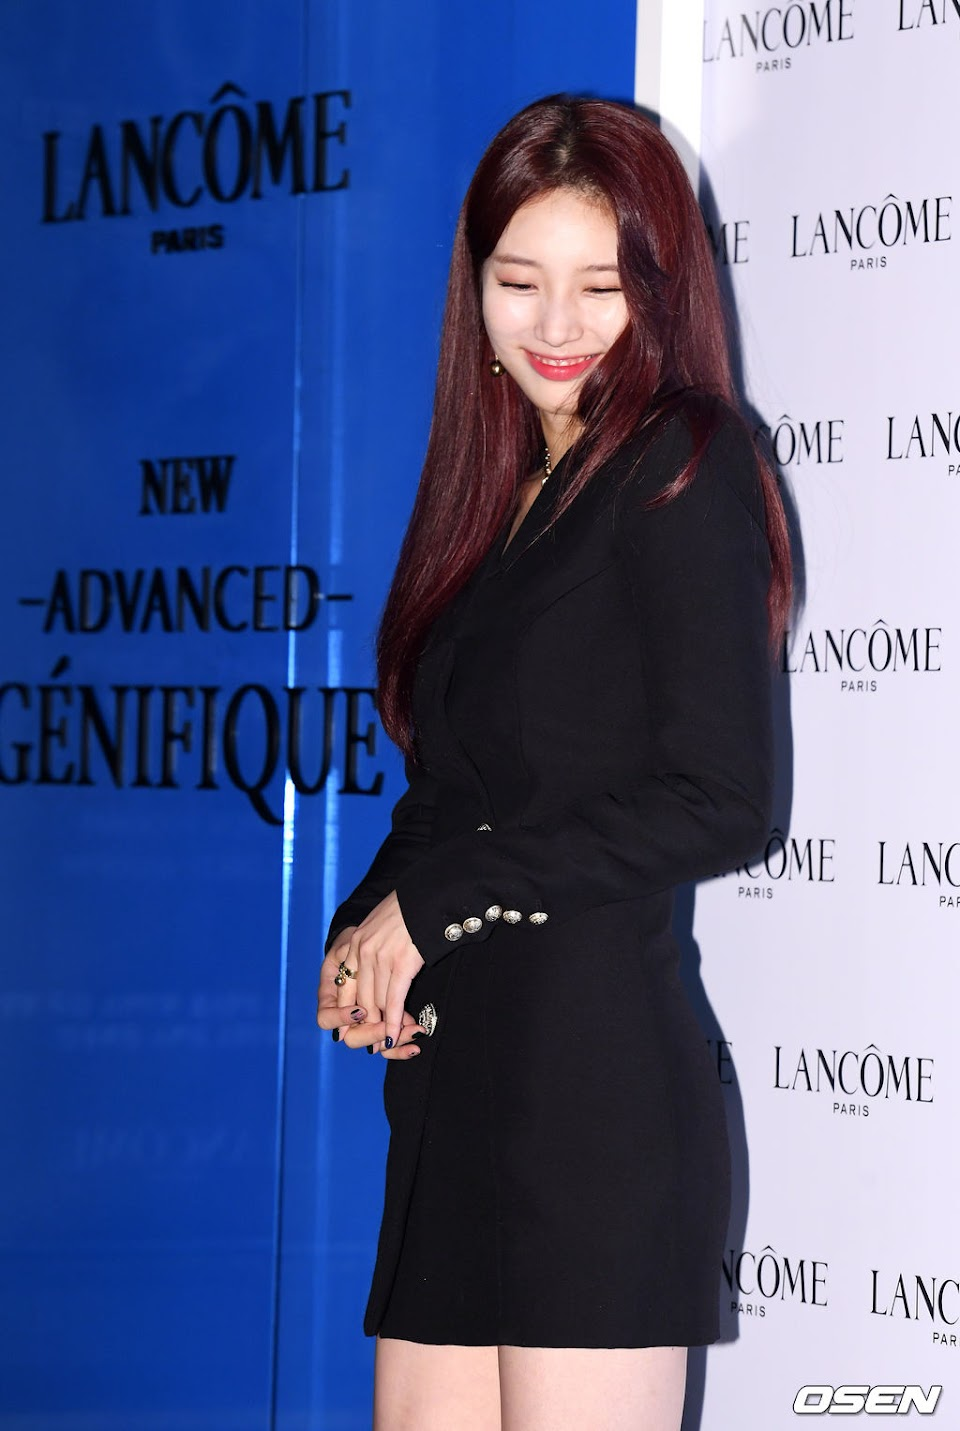 suzy red hair 1